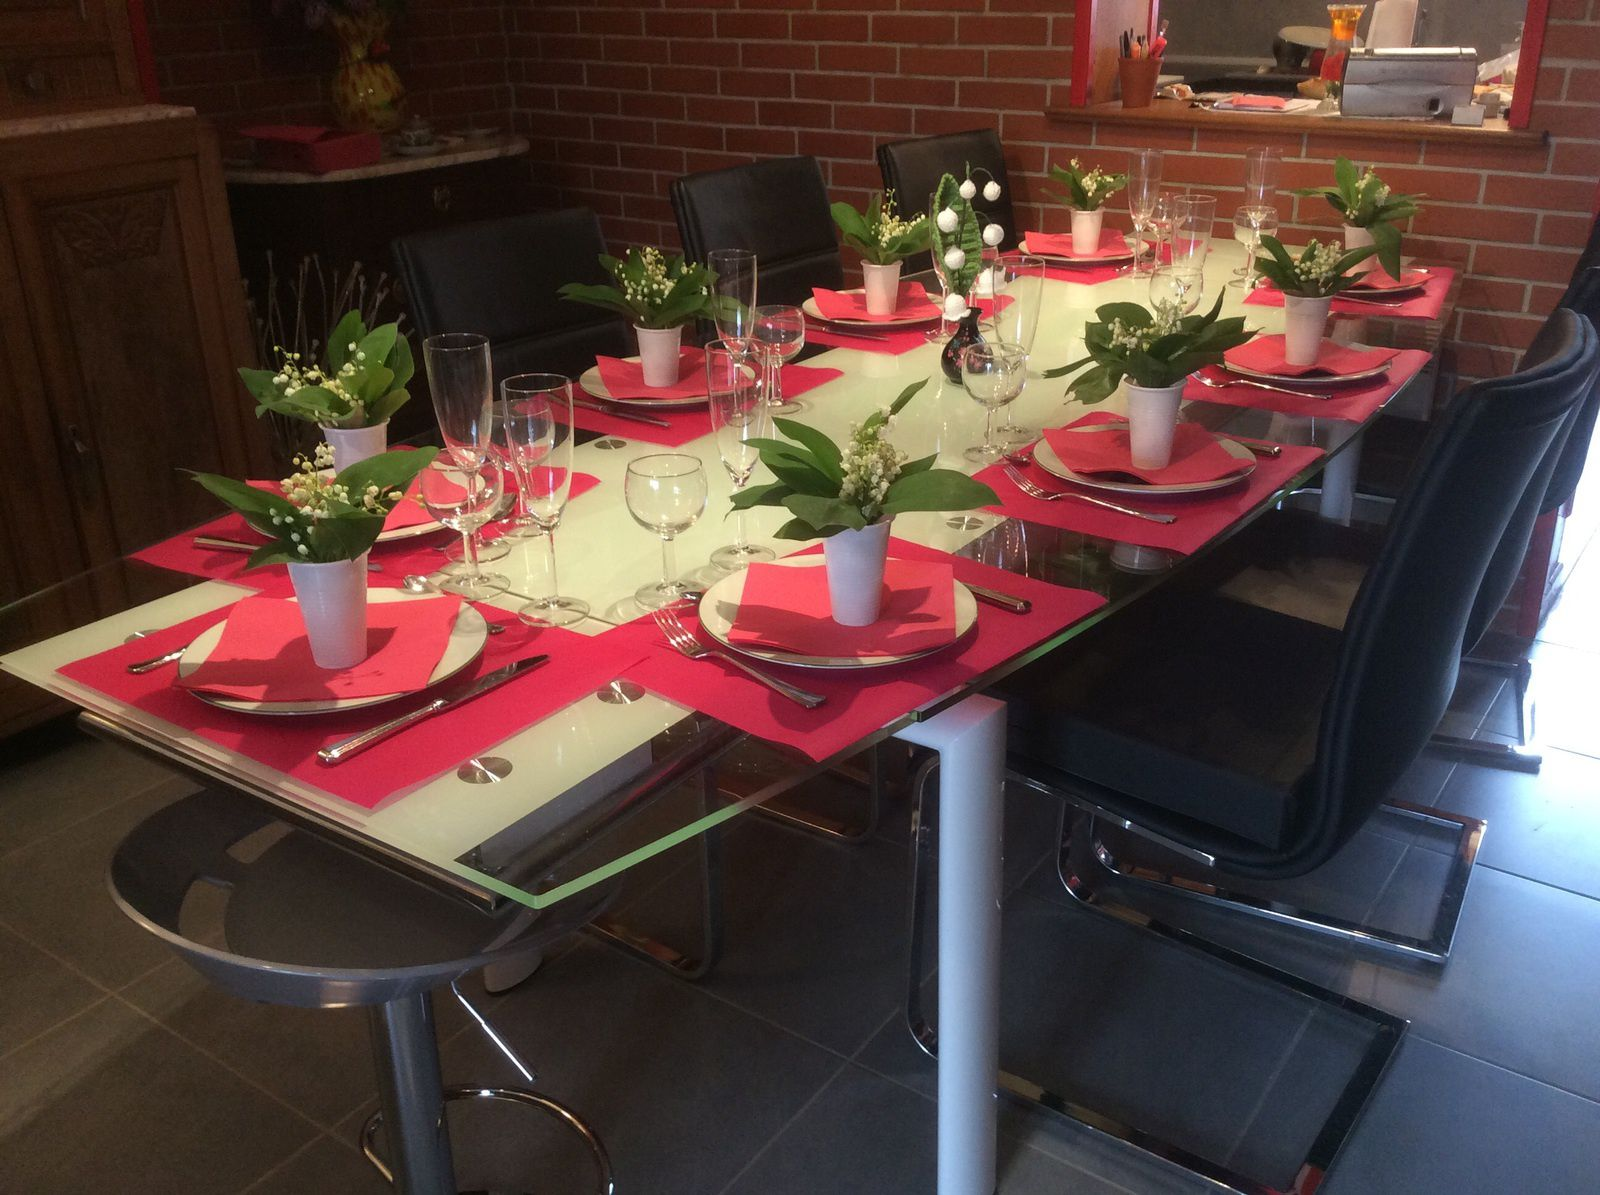 Deco de table &quot&#x3B;muguet&quot&#x3B;